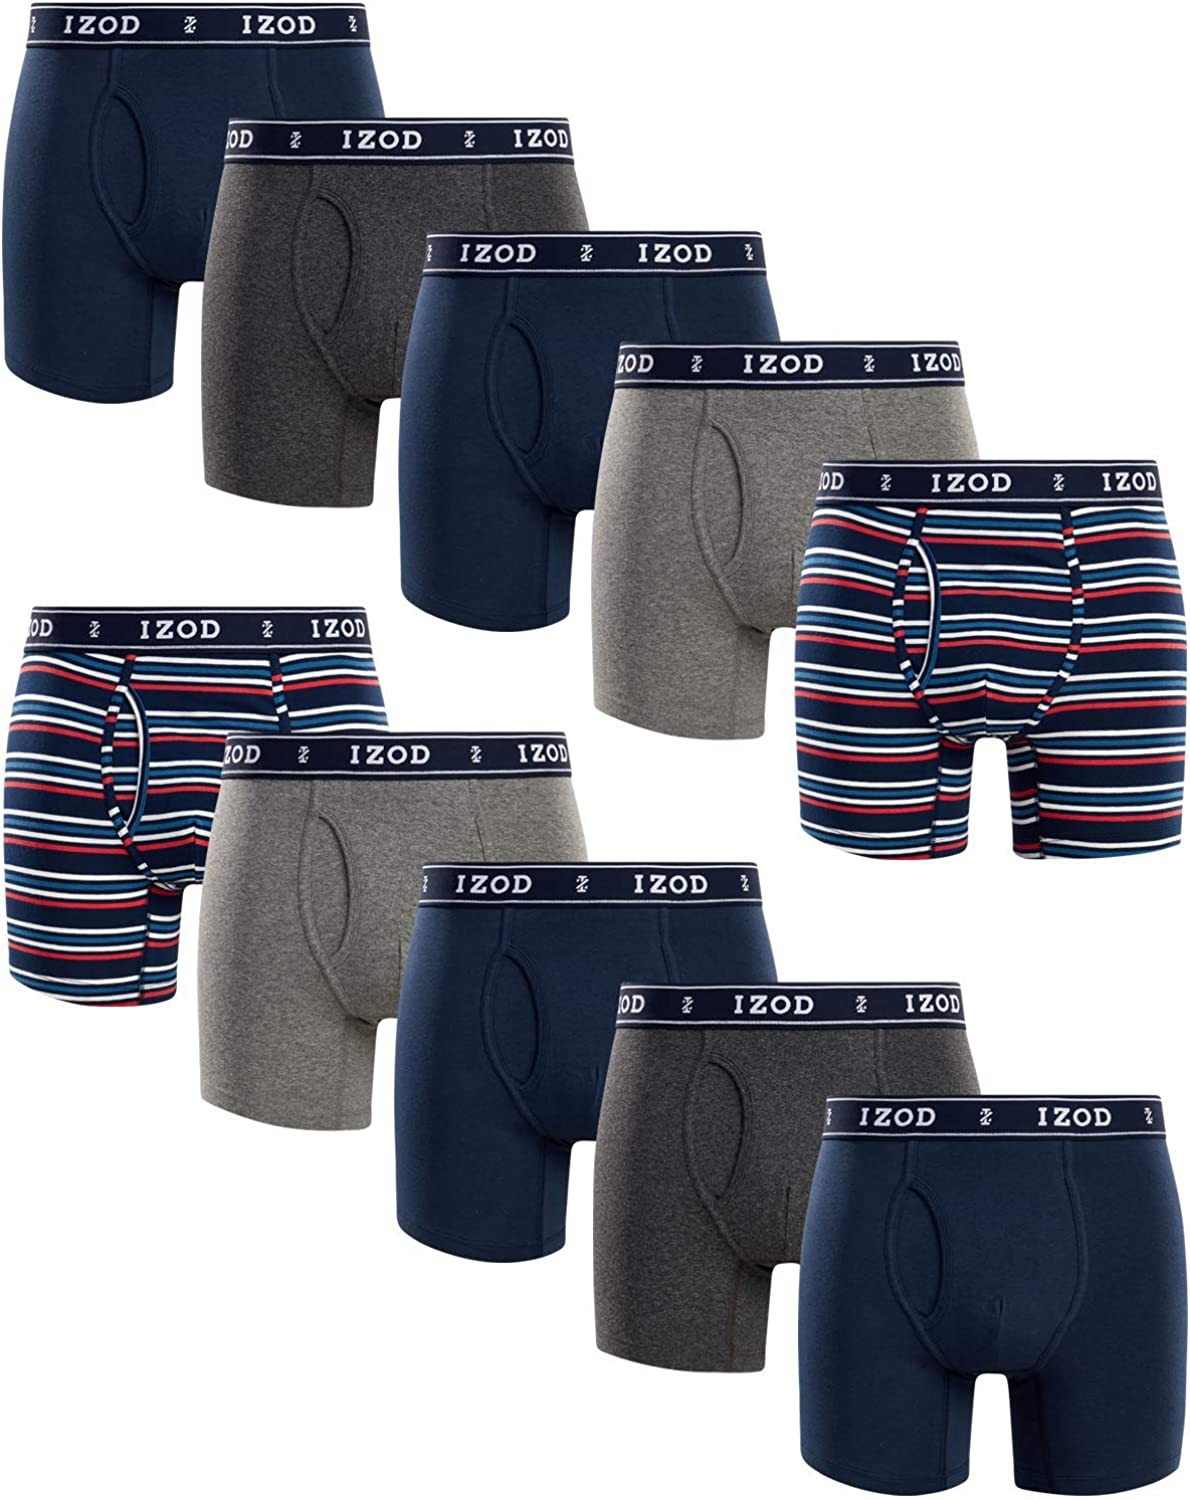 IZOD Men's Underwear – Cotton Stretch Boxer Briefs with Functional Fly (10 Pack)